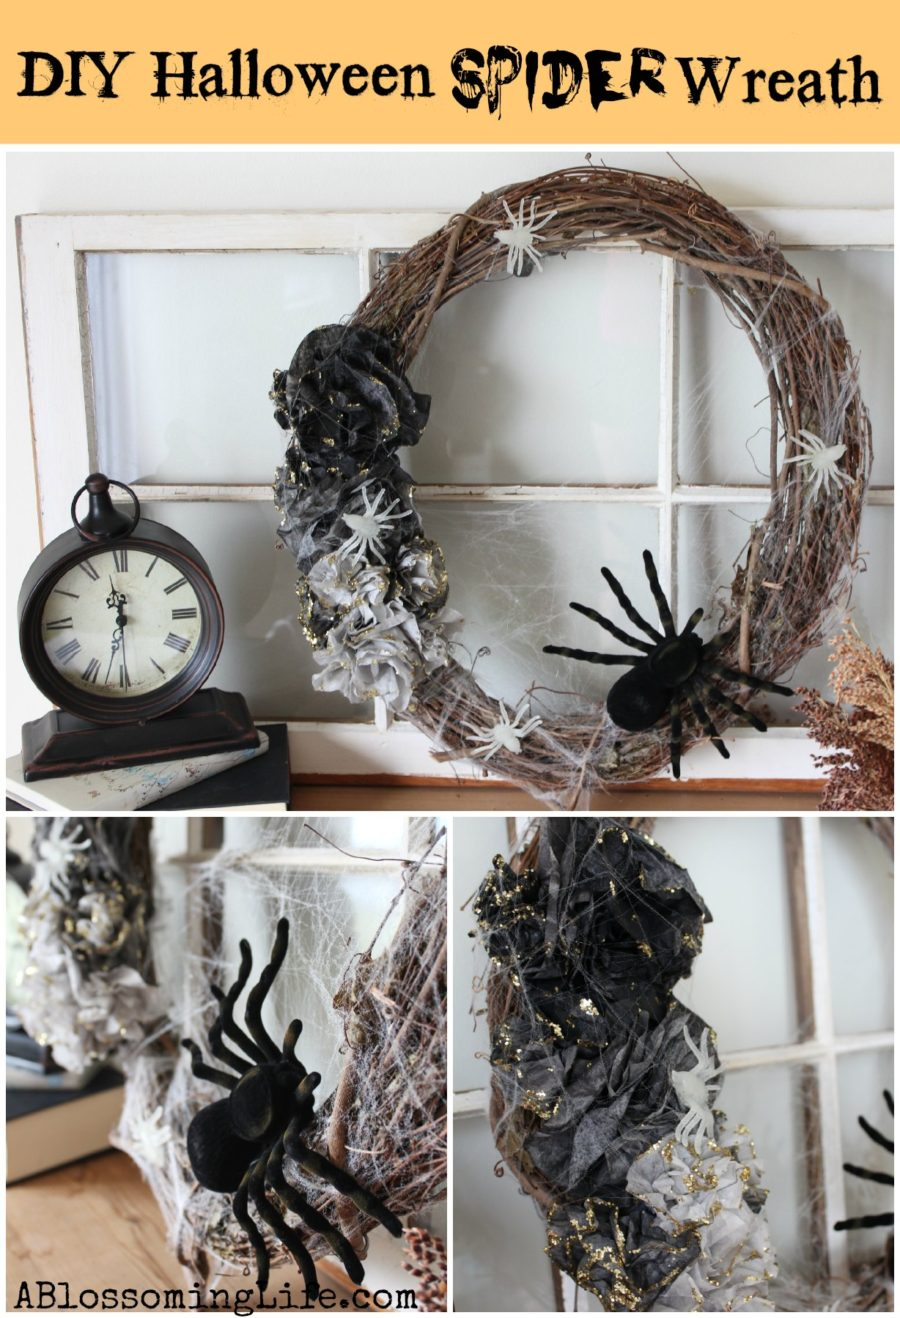 DIY Halloween Spider Ombre Wreath